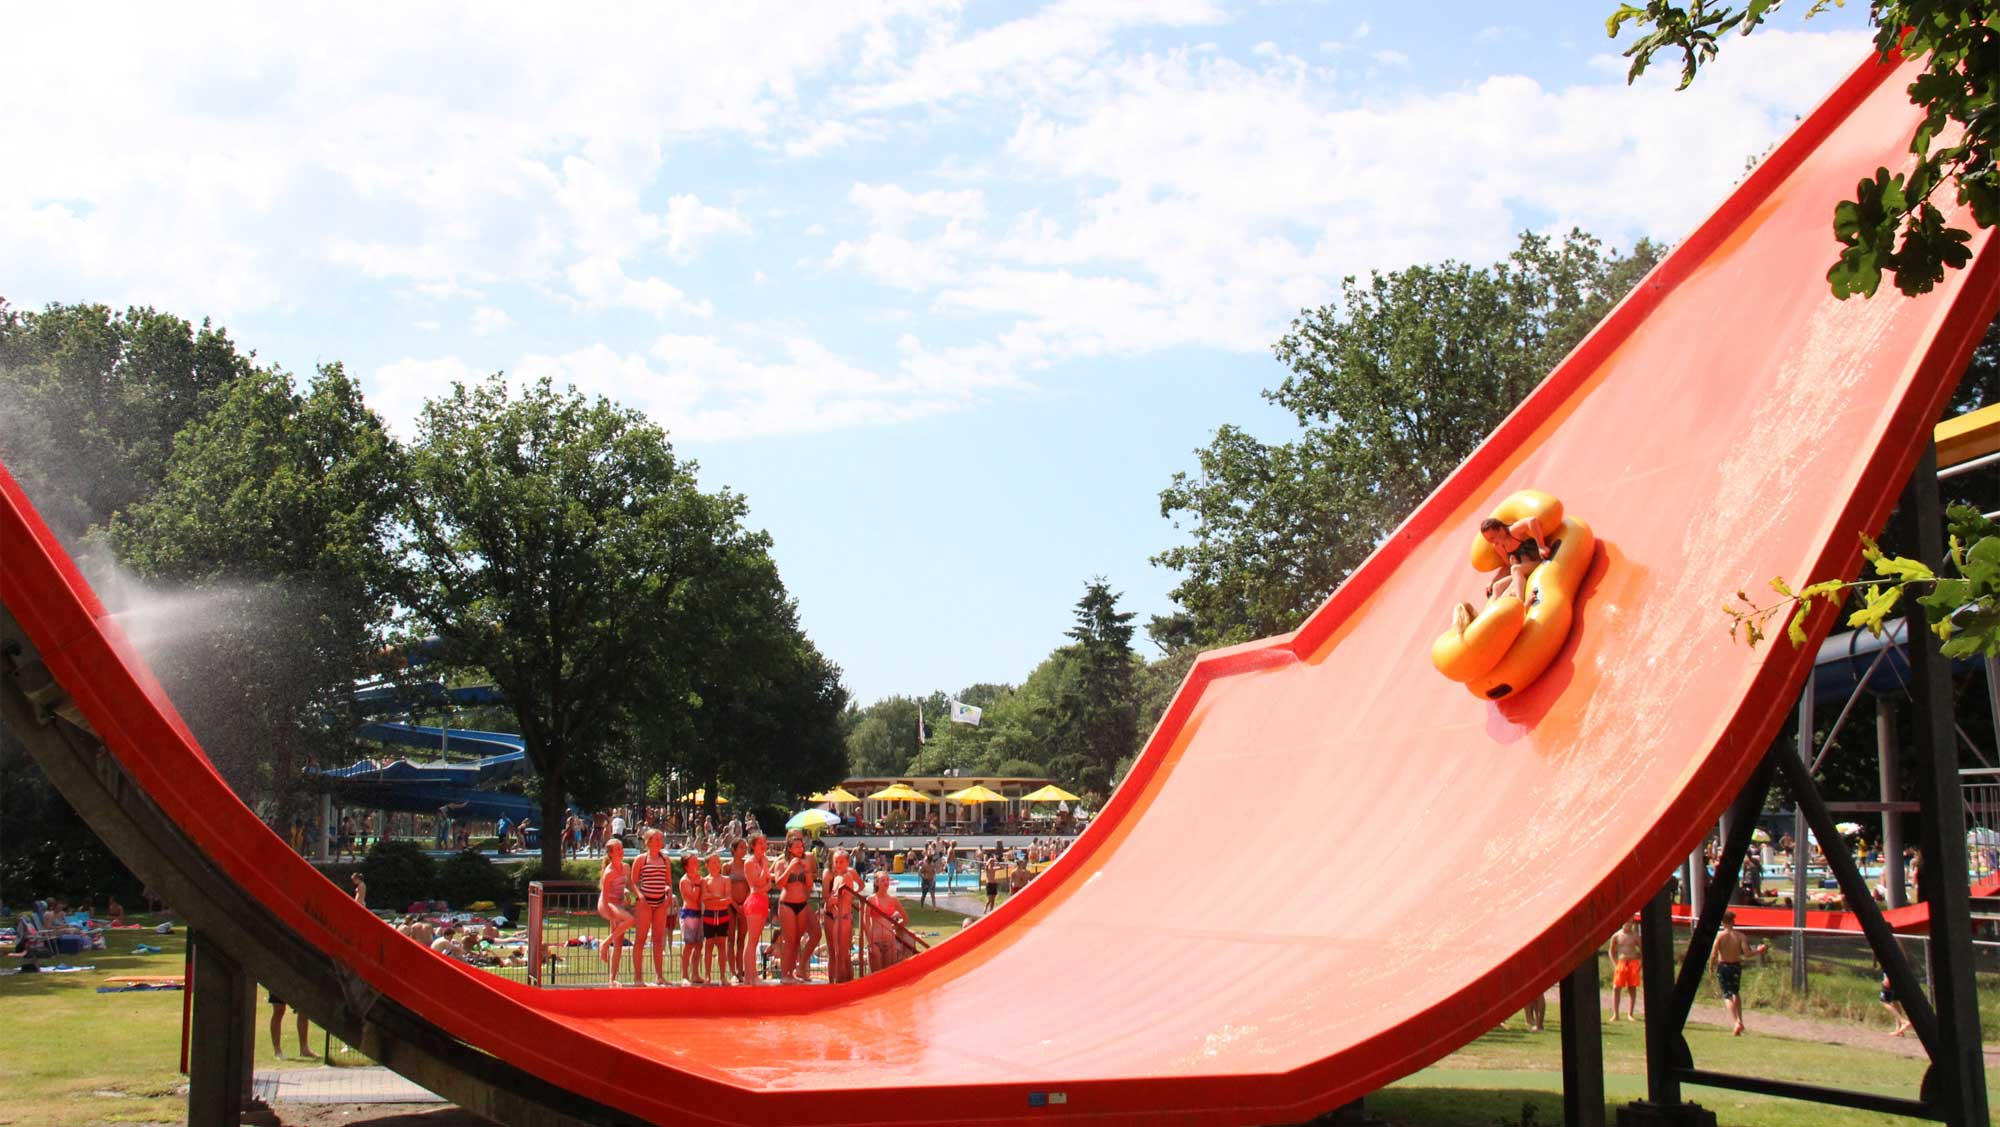 Waterspeelpark Splesj 15 Sidewinder